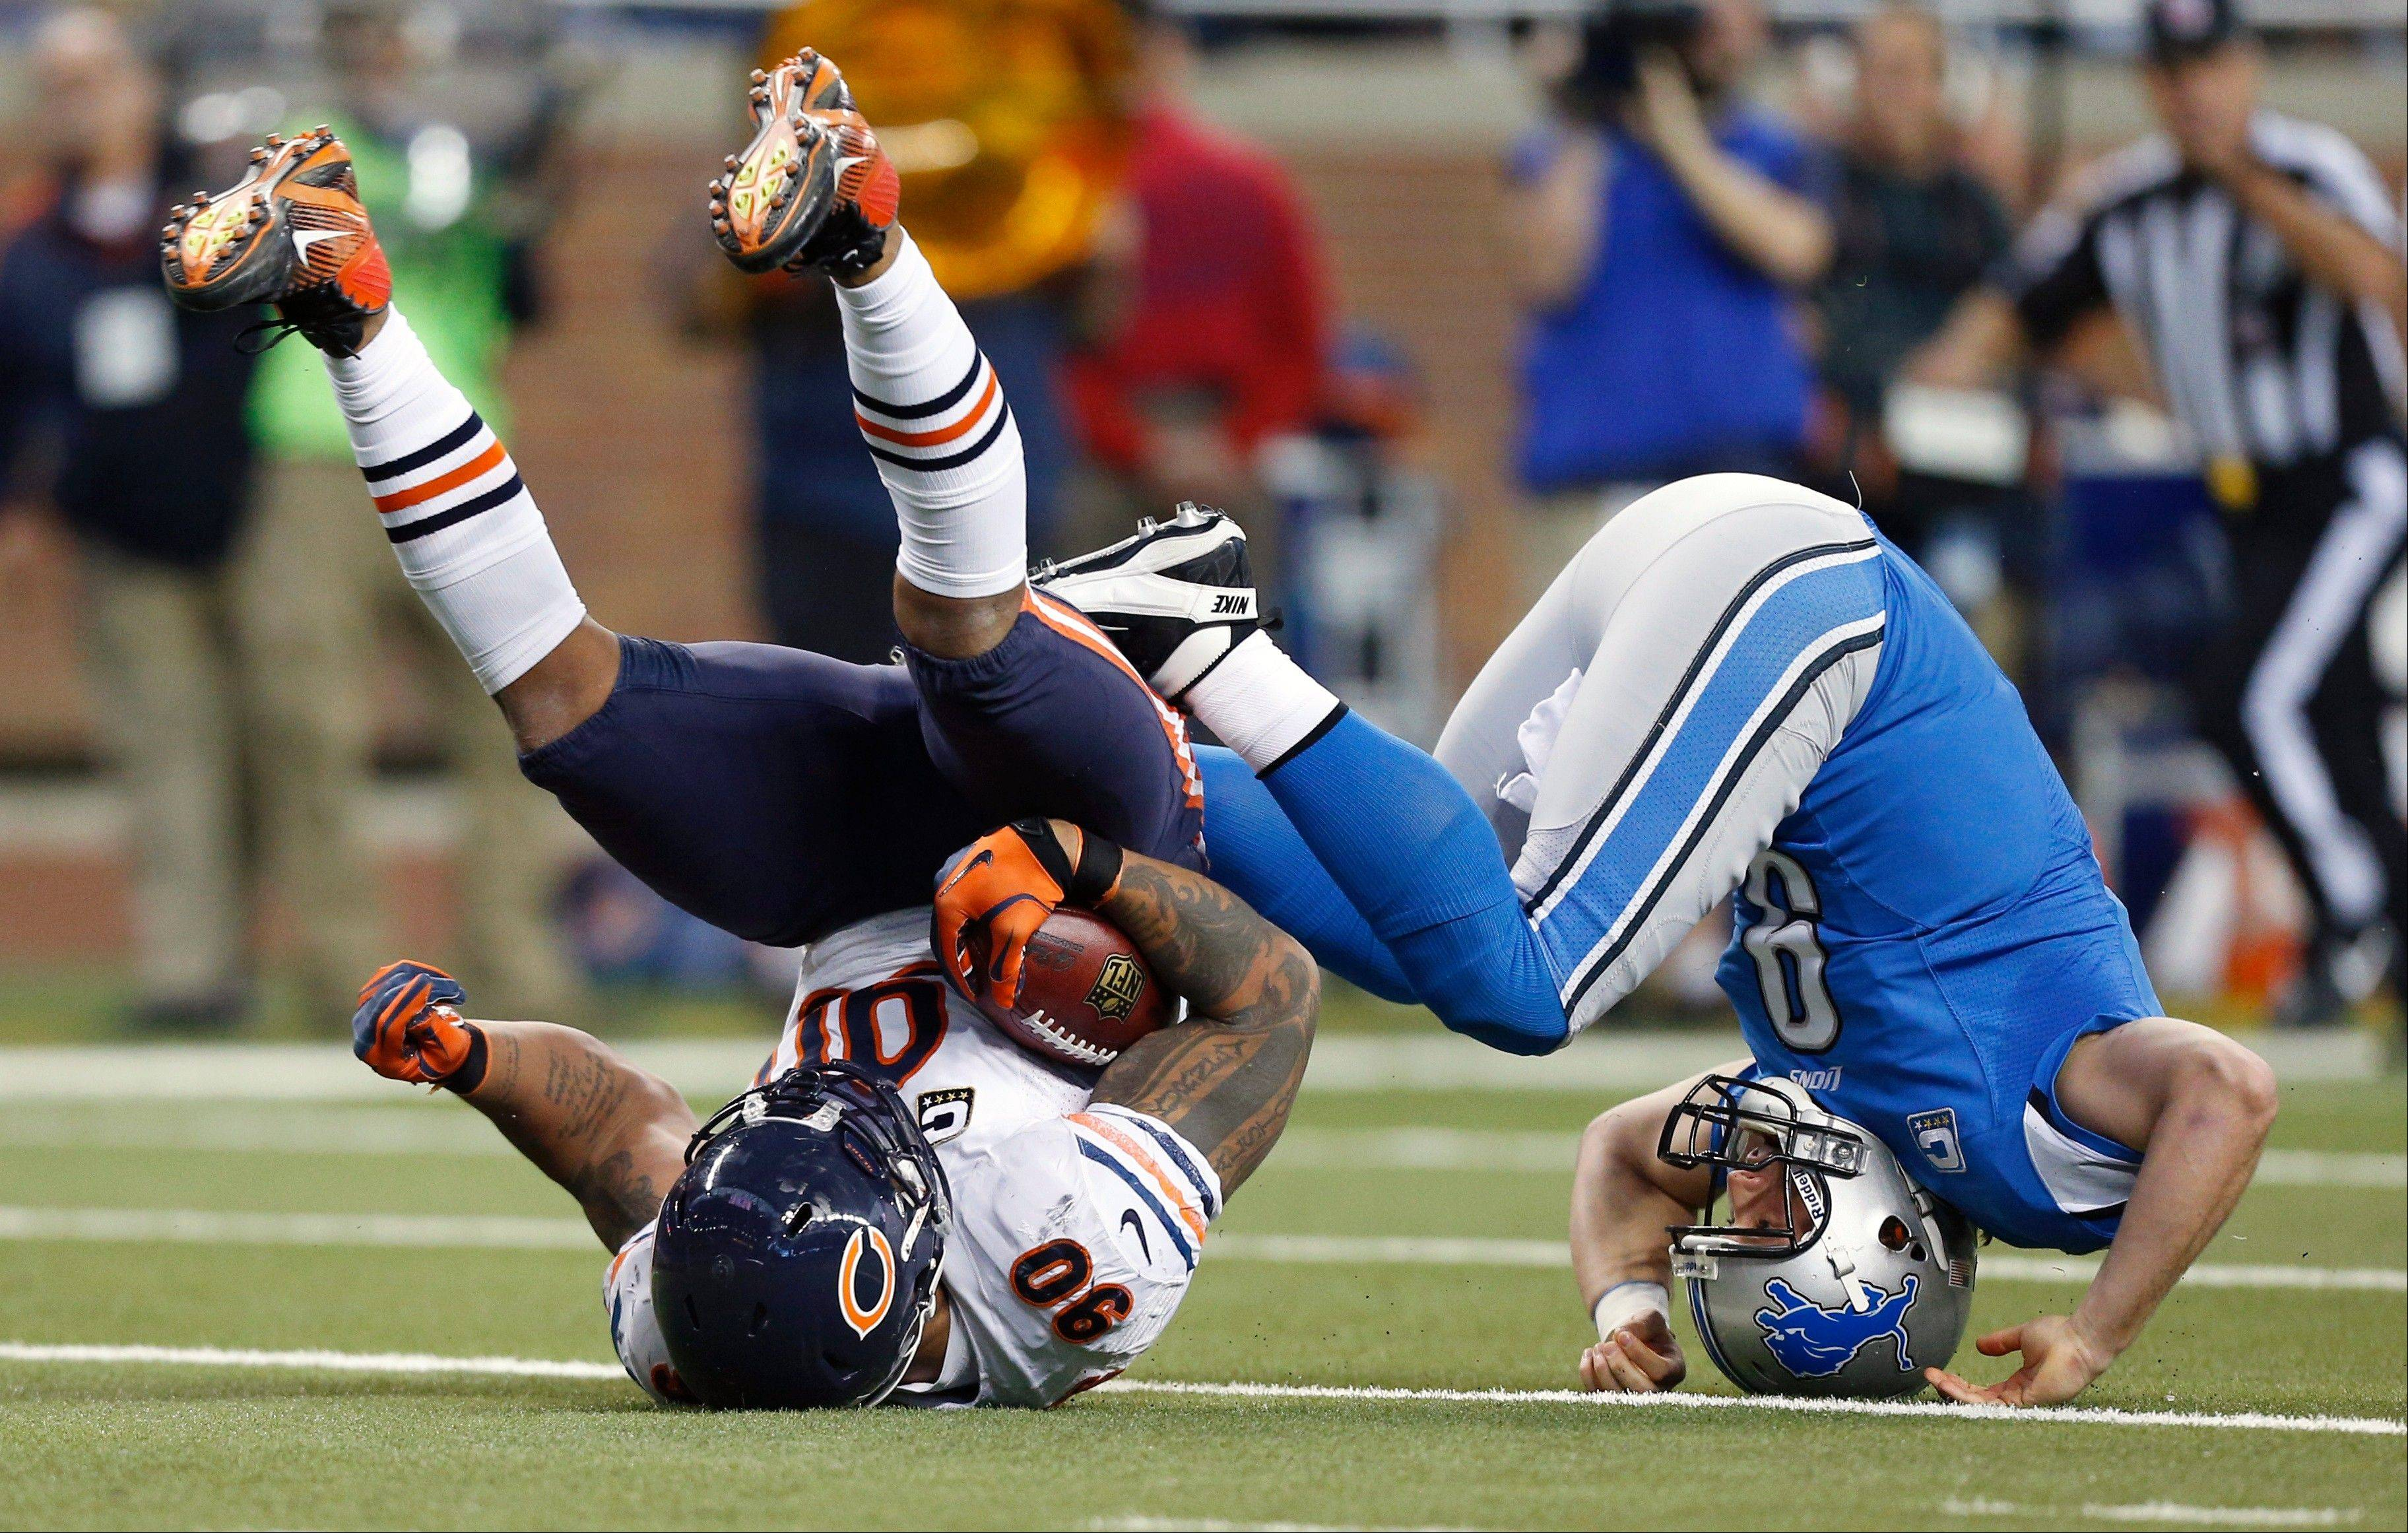 Chicago Bears defensive end Julius Peppers (90) recovers a loose ball and is stopped by Detroit Lions quarterback Matthew Stafford (9) during the second quarter Sunday at Ford Field in Detroit. The Bears would ultimately beat the Lions but lose out on the playoffs after the Minneosta Vikings beat the Green Bay Packers.